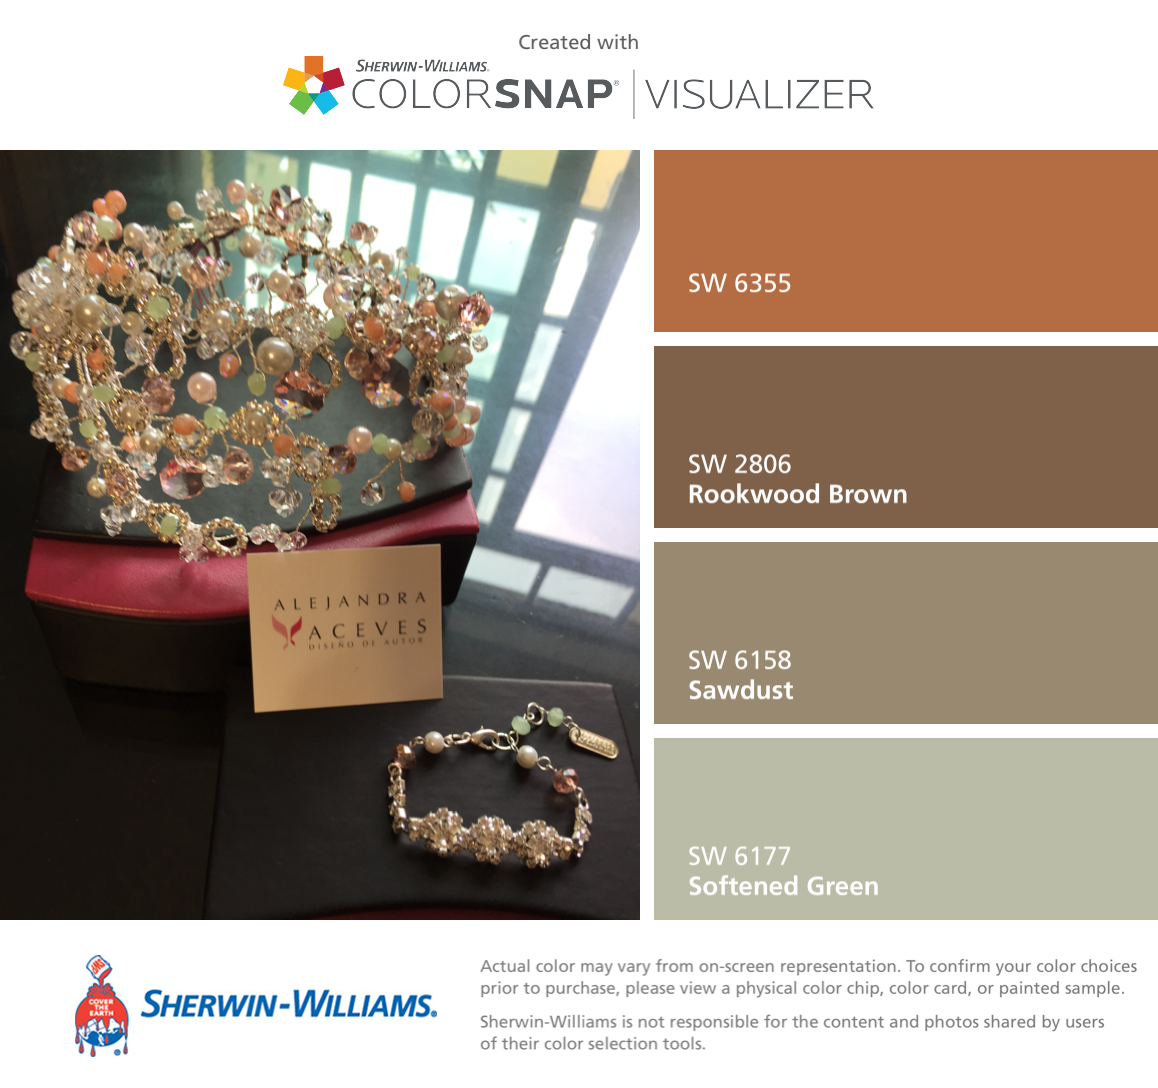 I found these colors with colorsnap visualizer for iphone by i found these colors with colorsnap visualizer for iphone by sherwin williams truepenny nvjuhfo Images